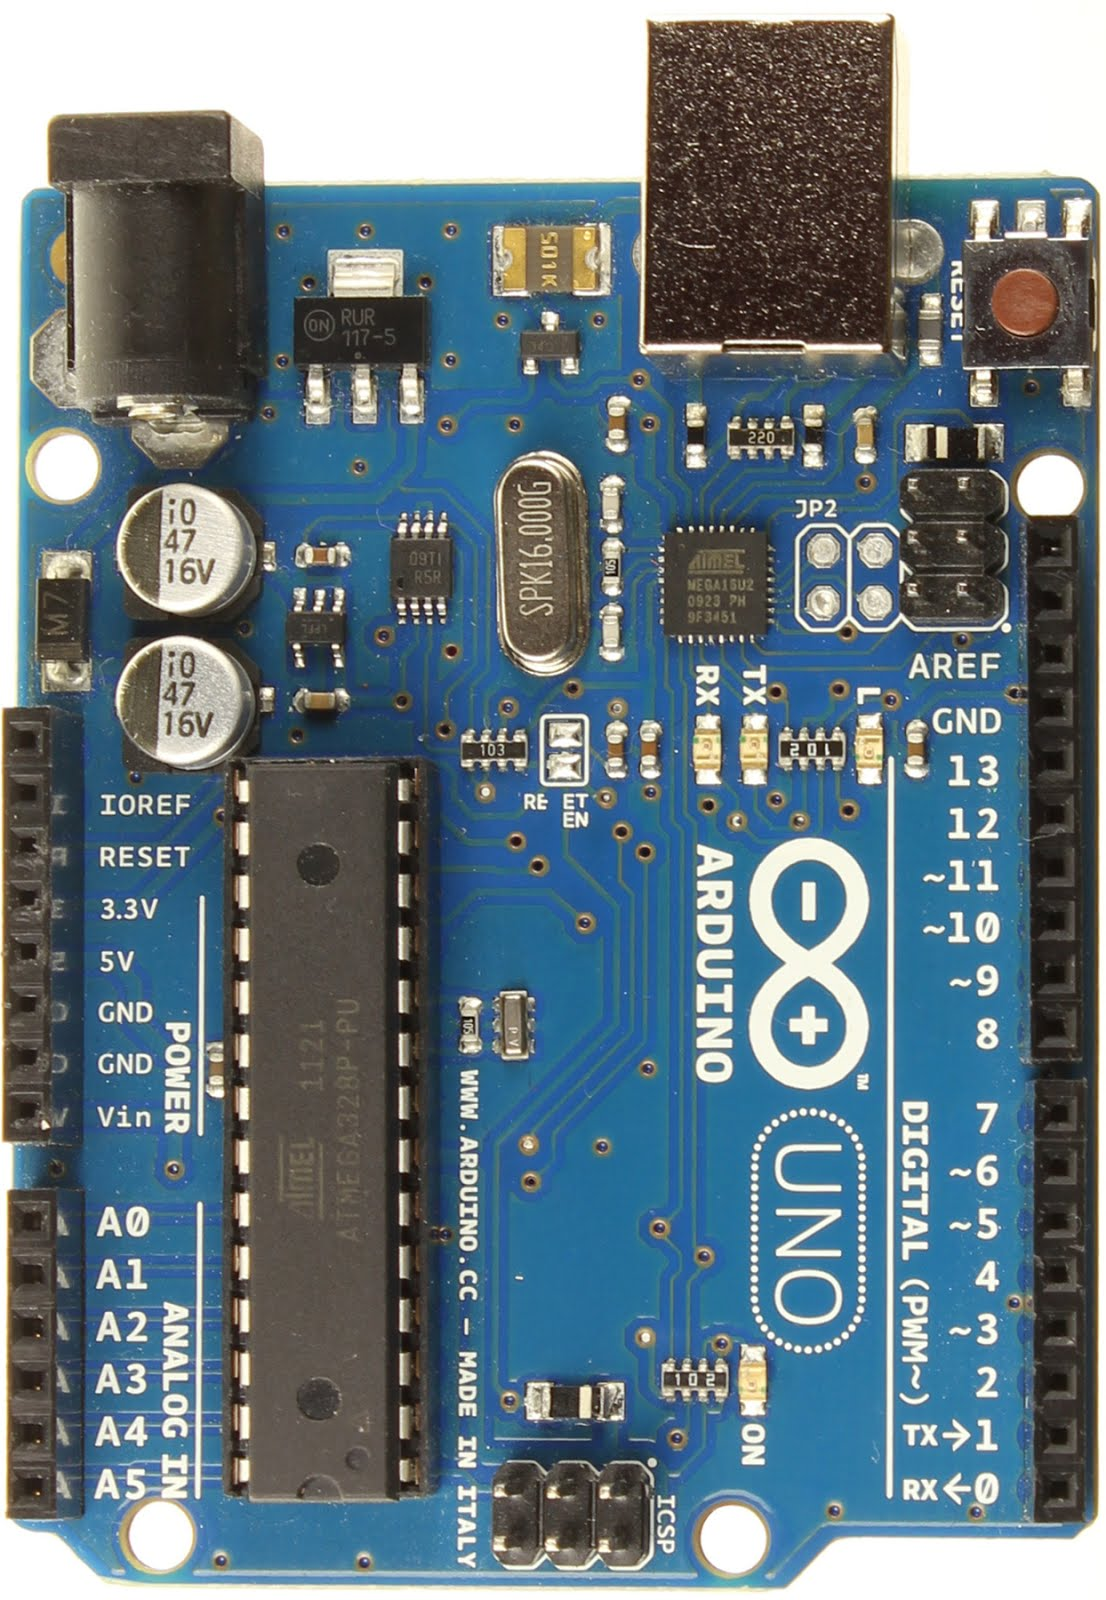 Blind Arduino Blog: Getting to know the Arduino Uno Board